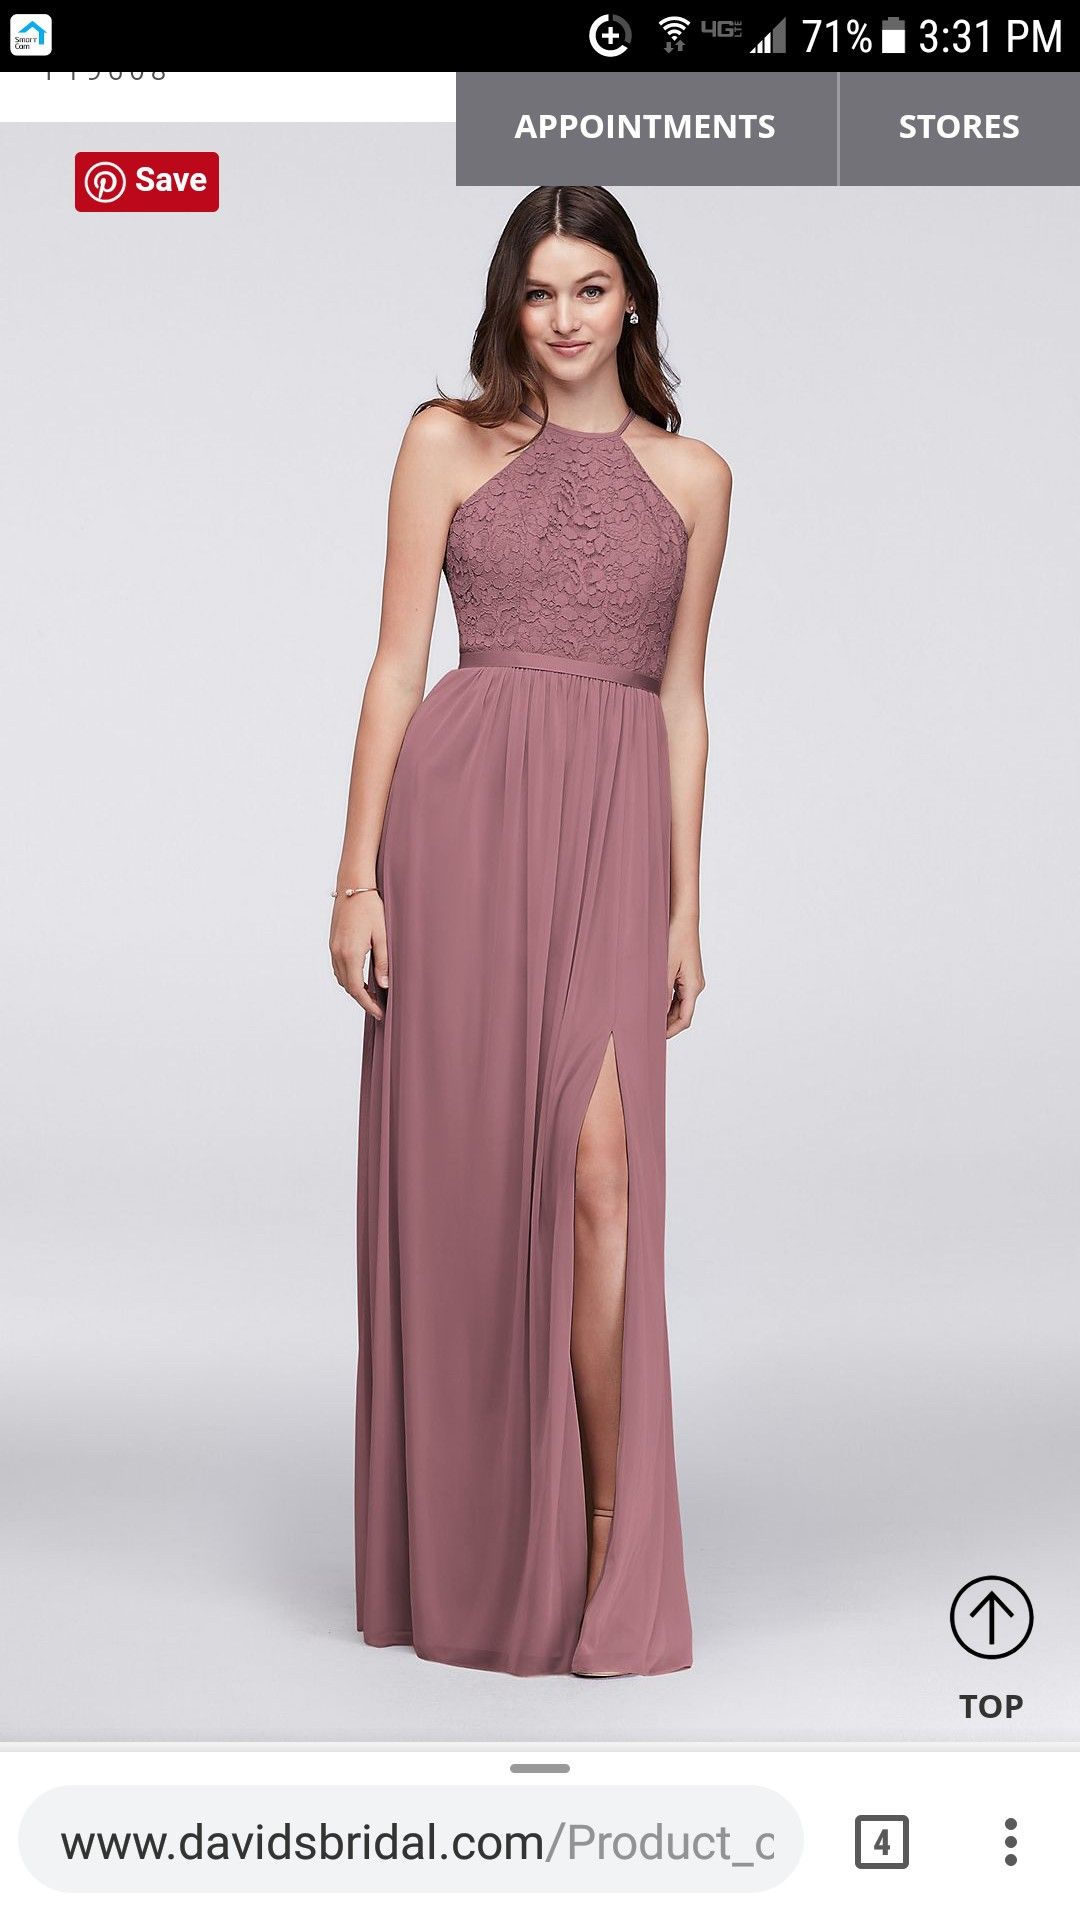 425fdff6644 Bridesmaid Dress idea from David s Bridal. Dusty Rose lace halter top. Size  10.